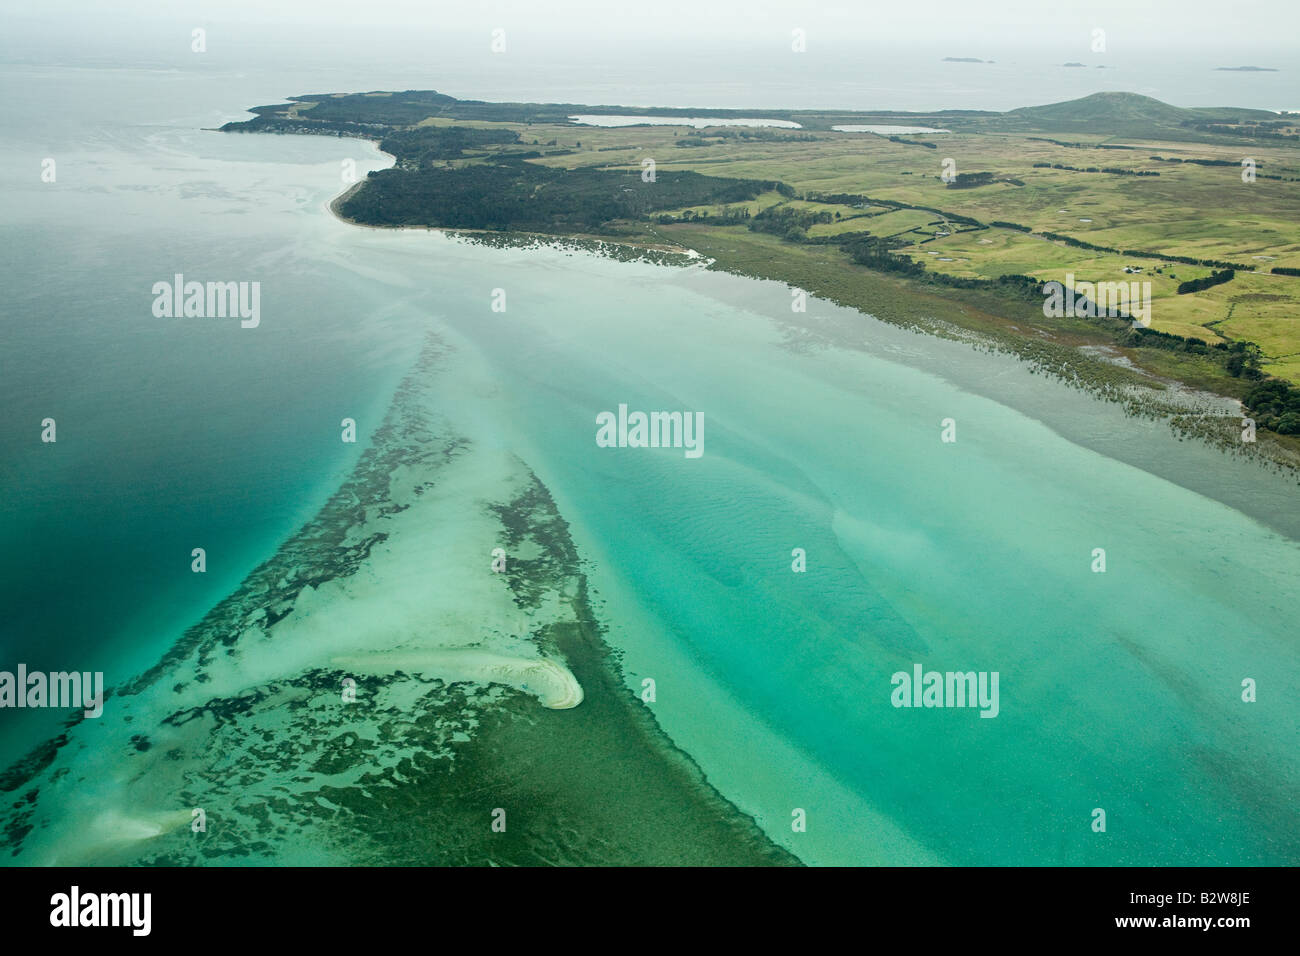 Aerial view of north island - Stock Image